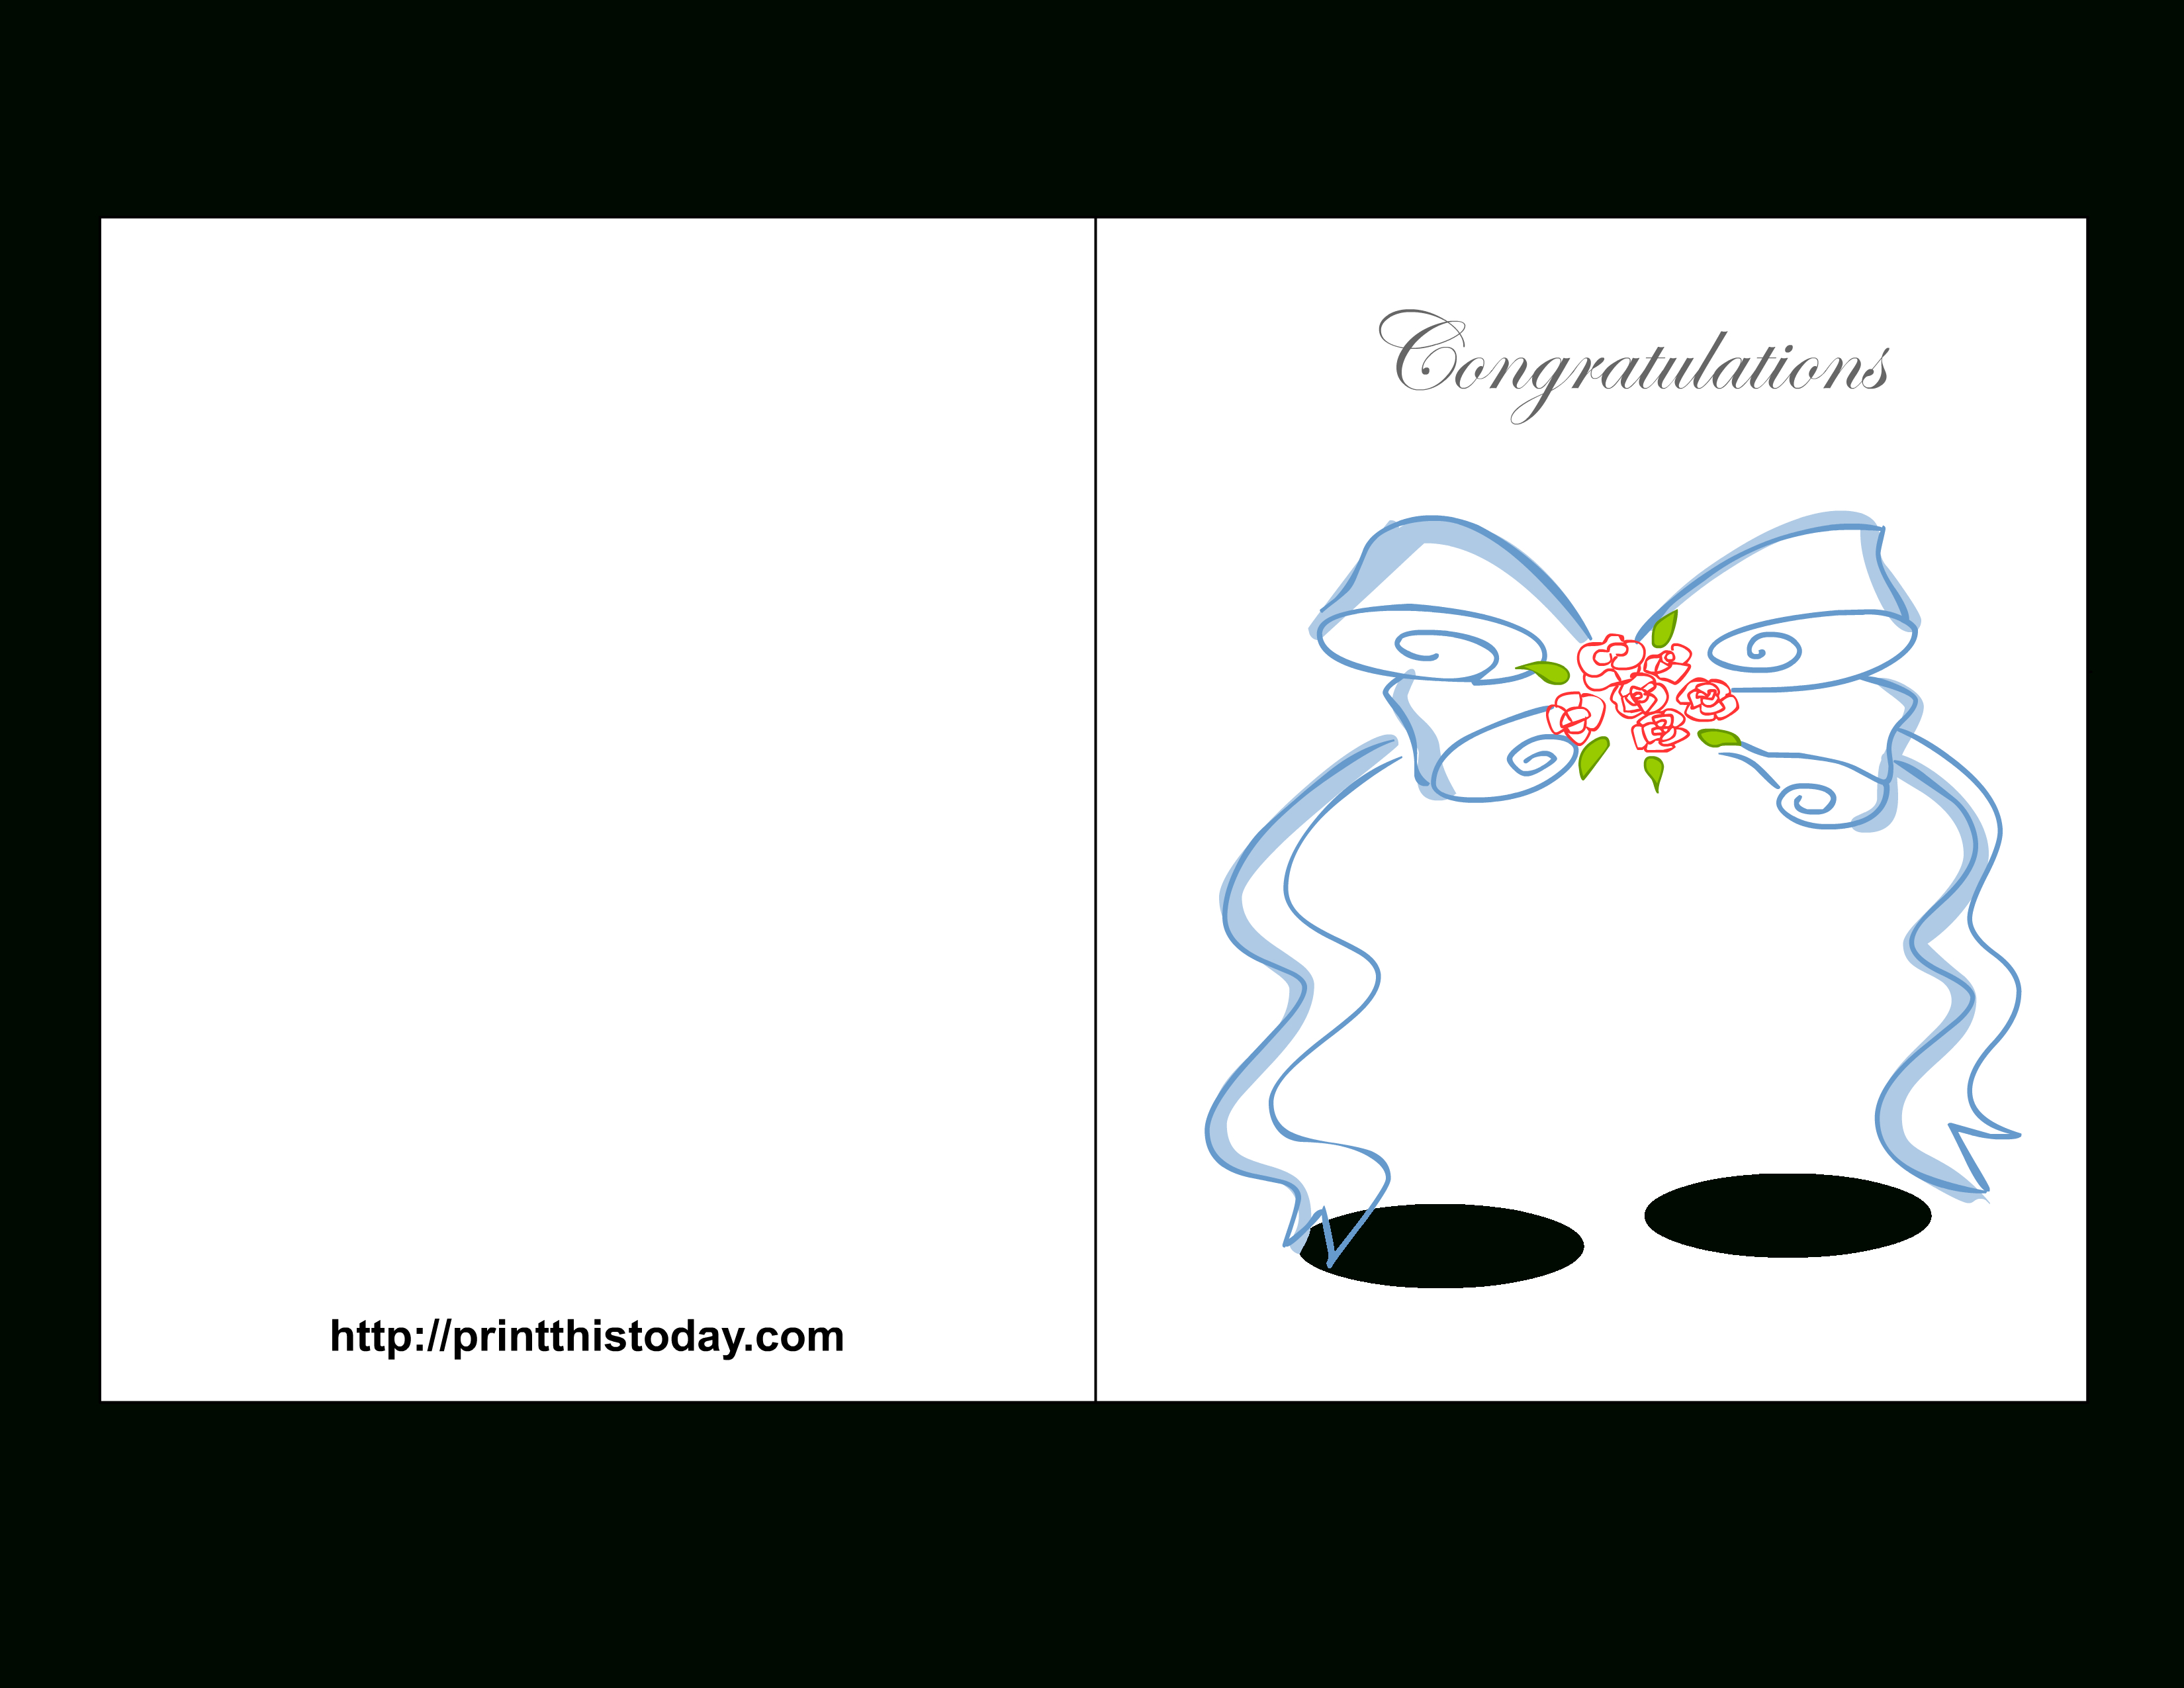 Free Printable Wedding Congratulations Cards - Free Printable Congratulations Cards